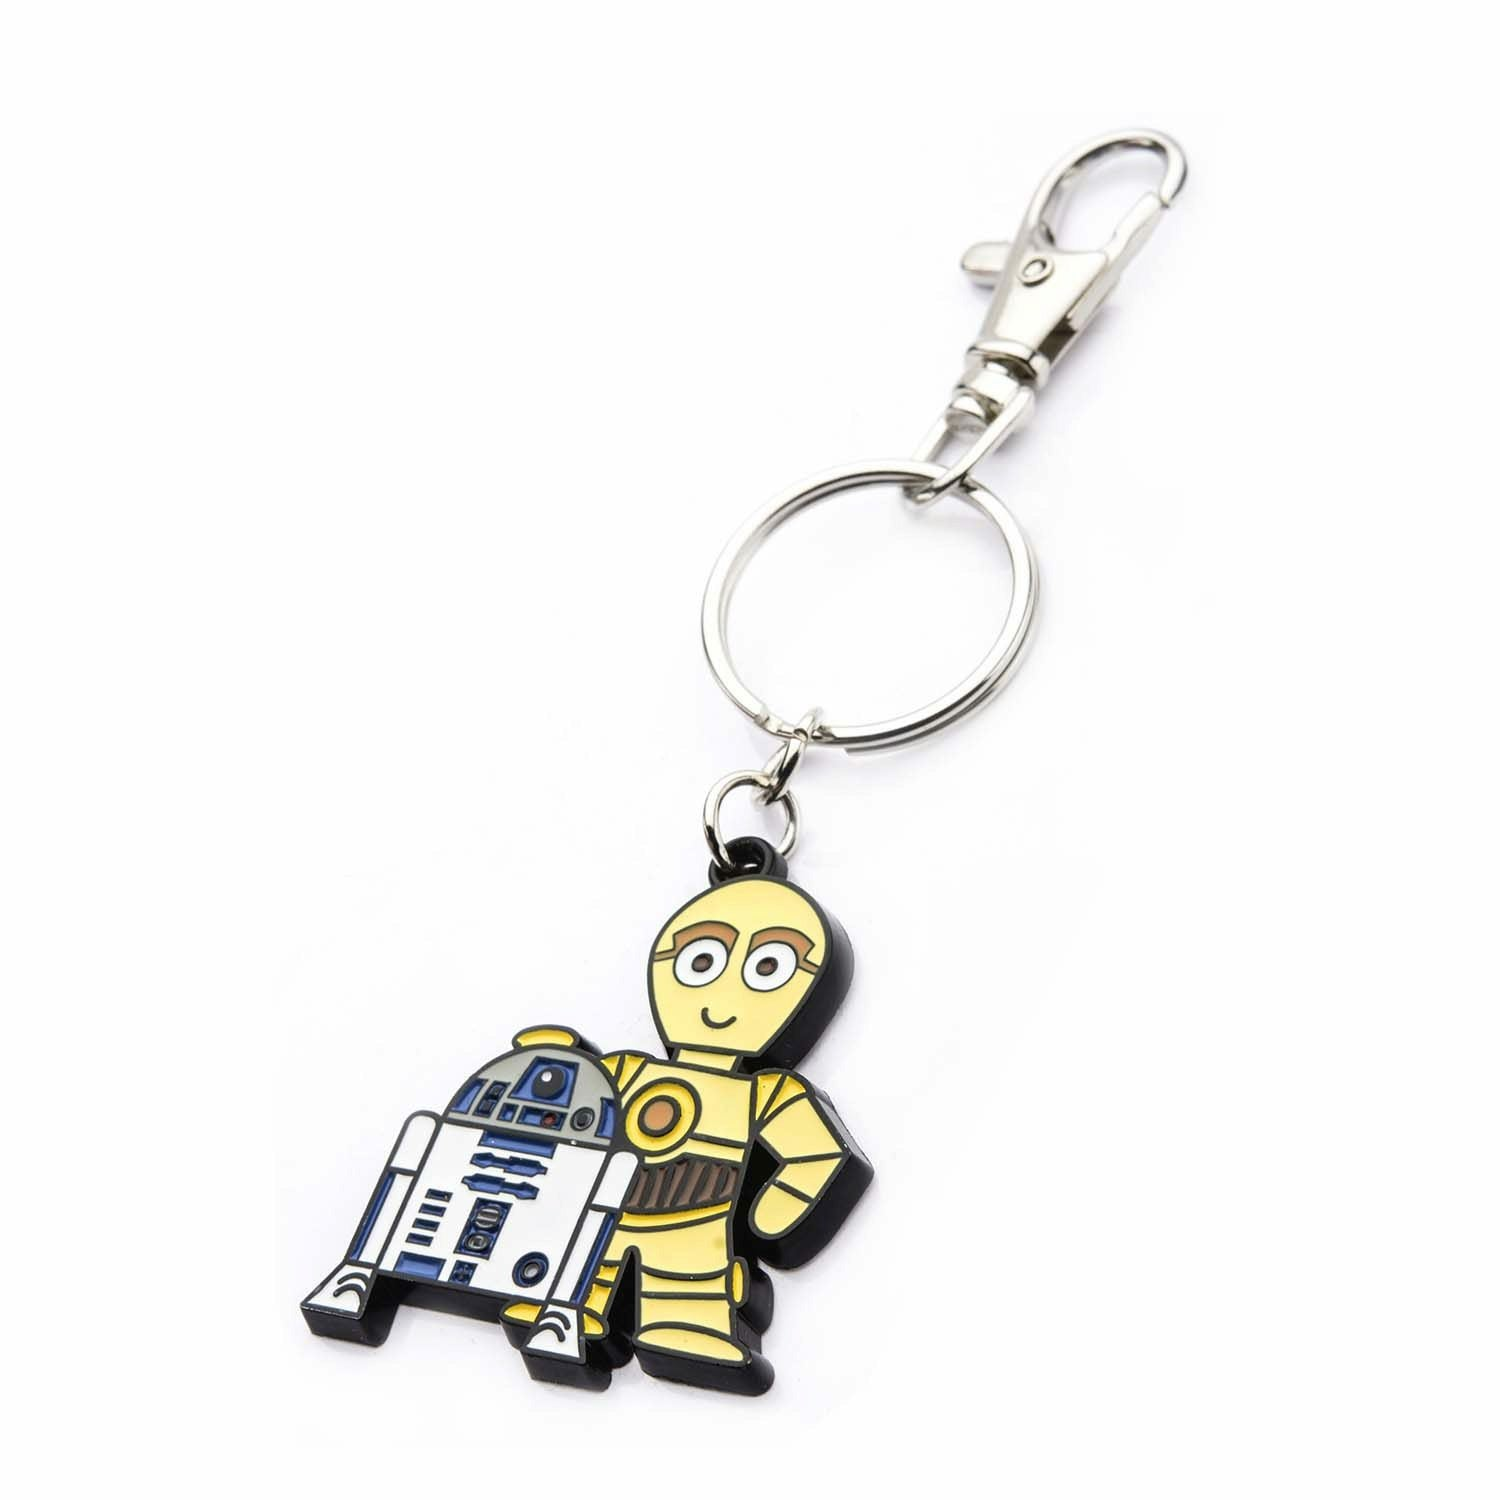 Star Wars R2-D2 & C-3PO Bag Tag Keychain